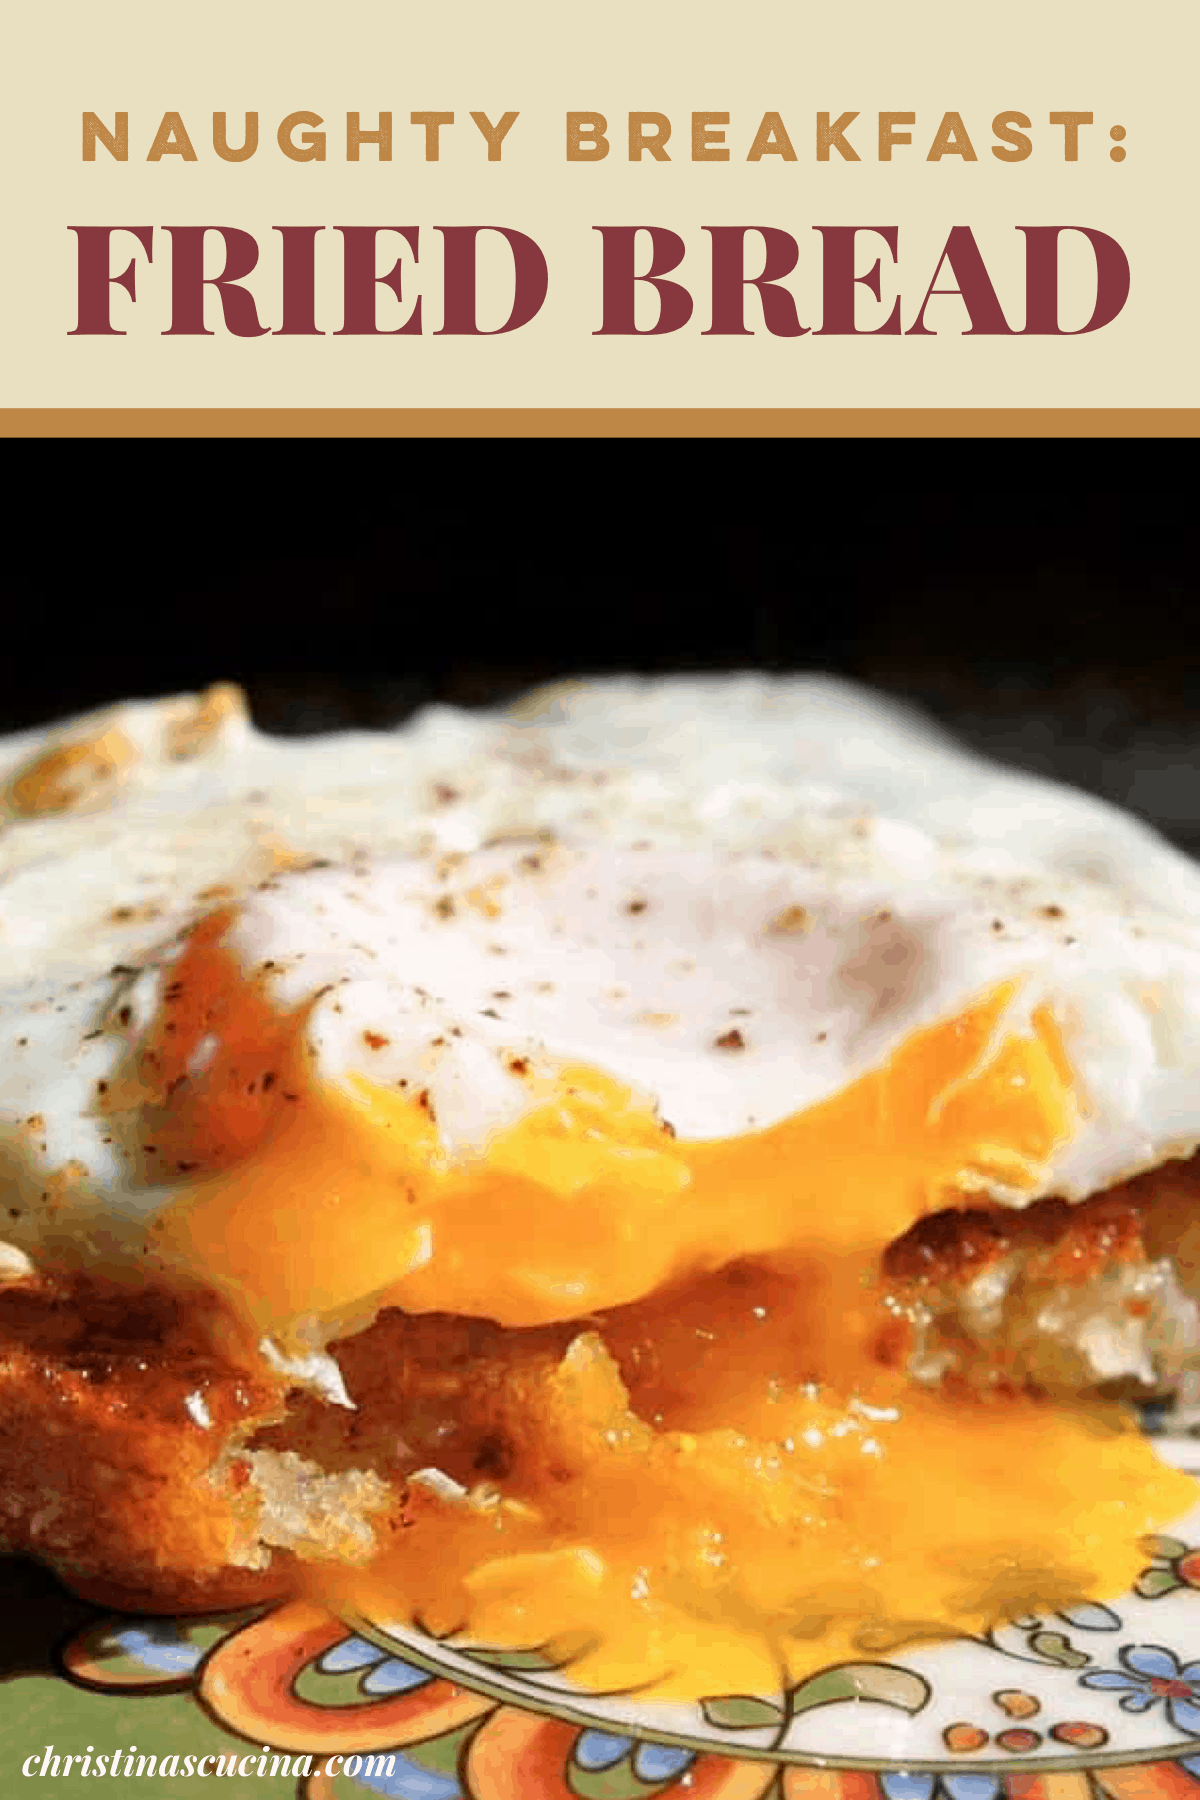 fried bread with egg on top